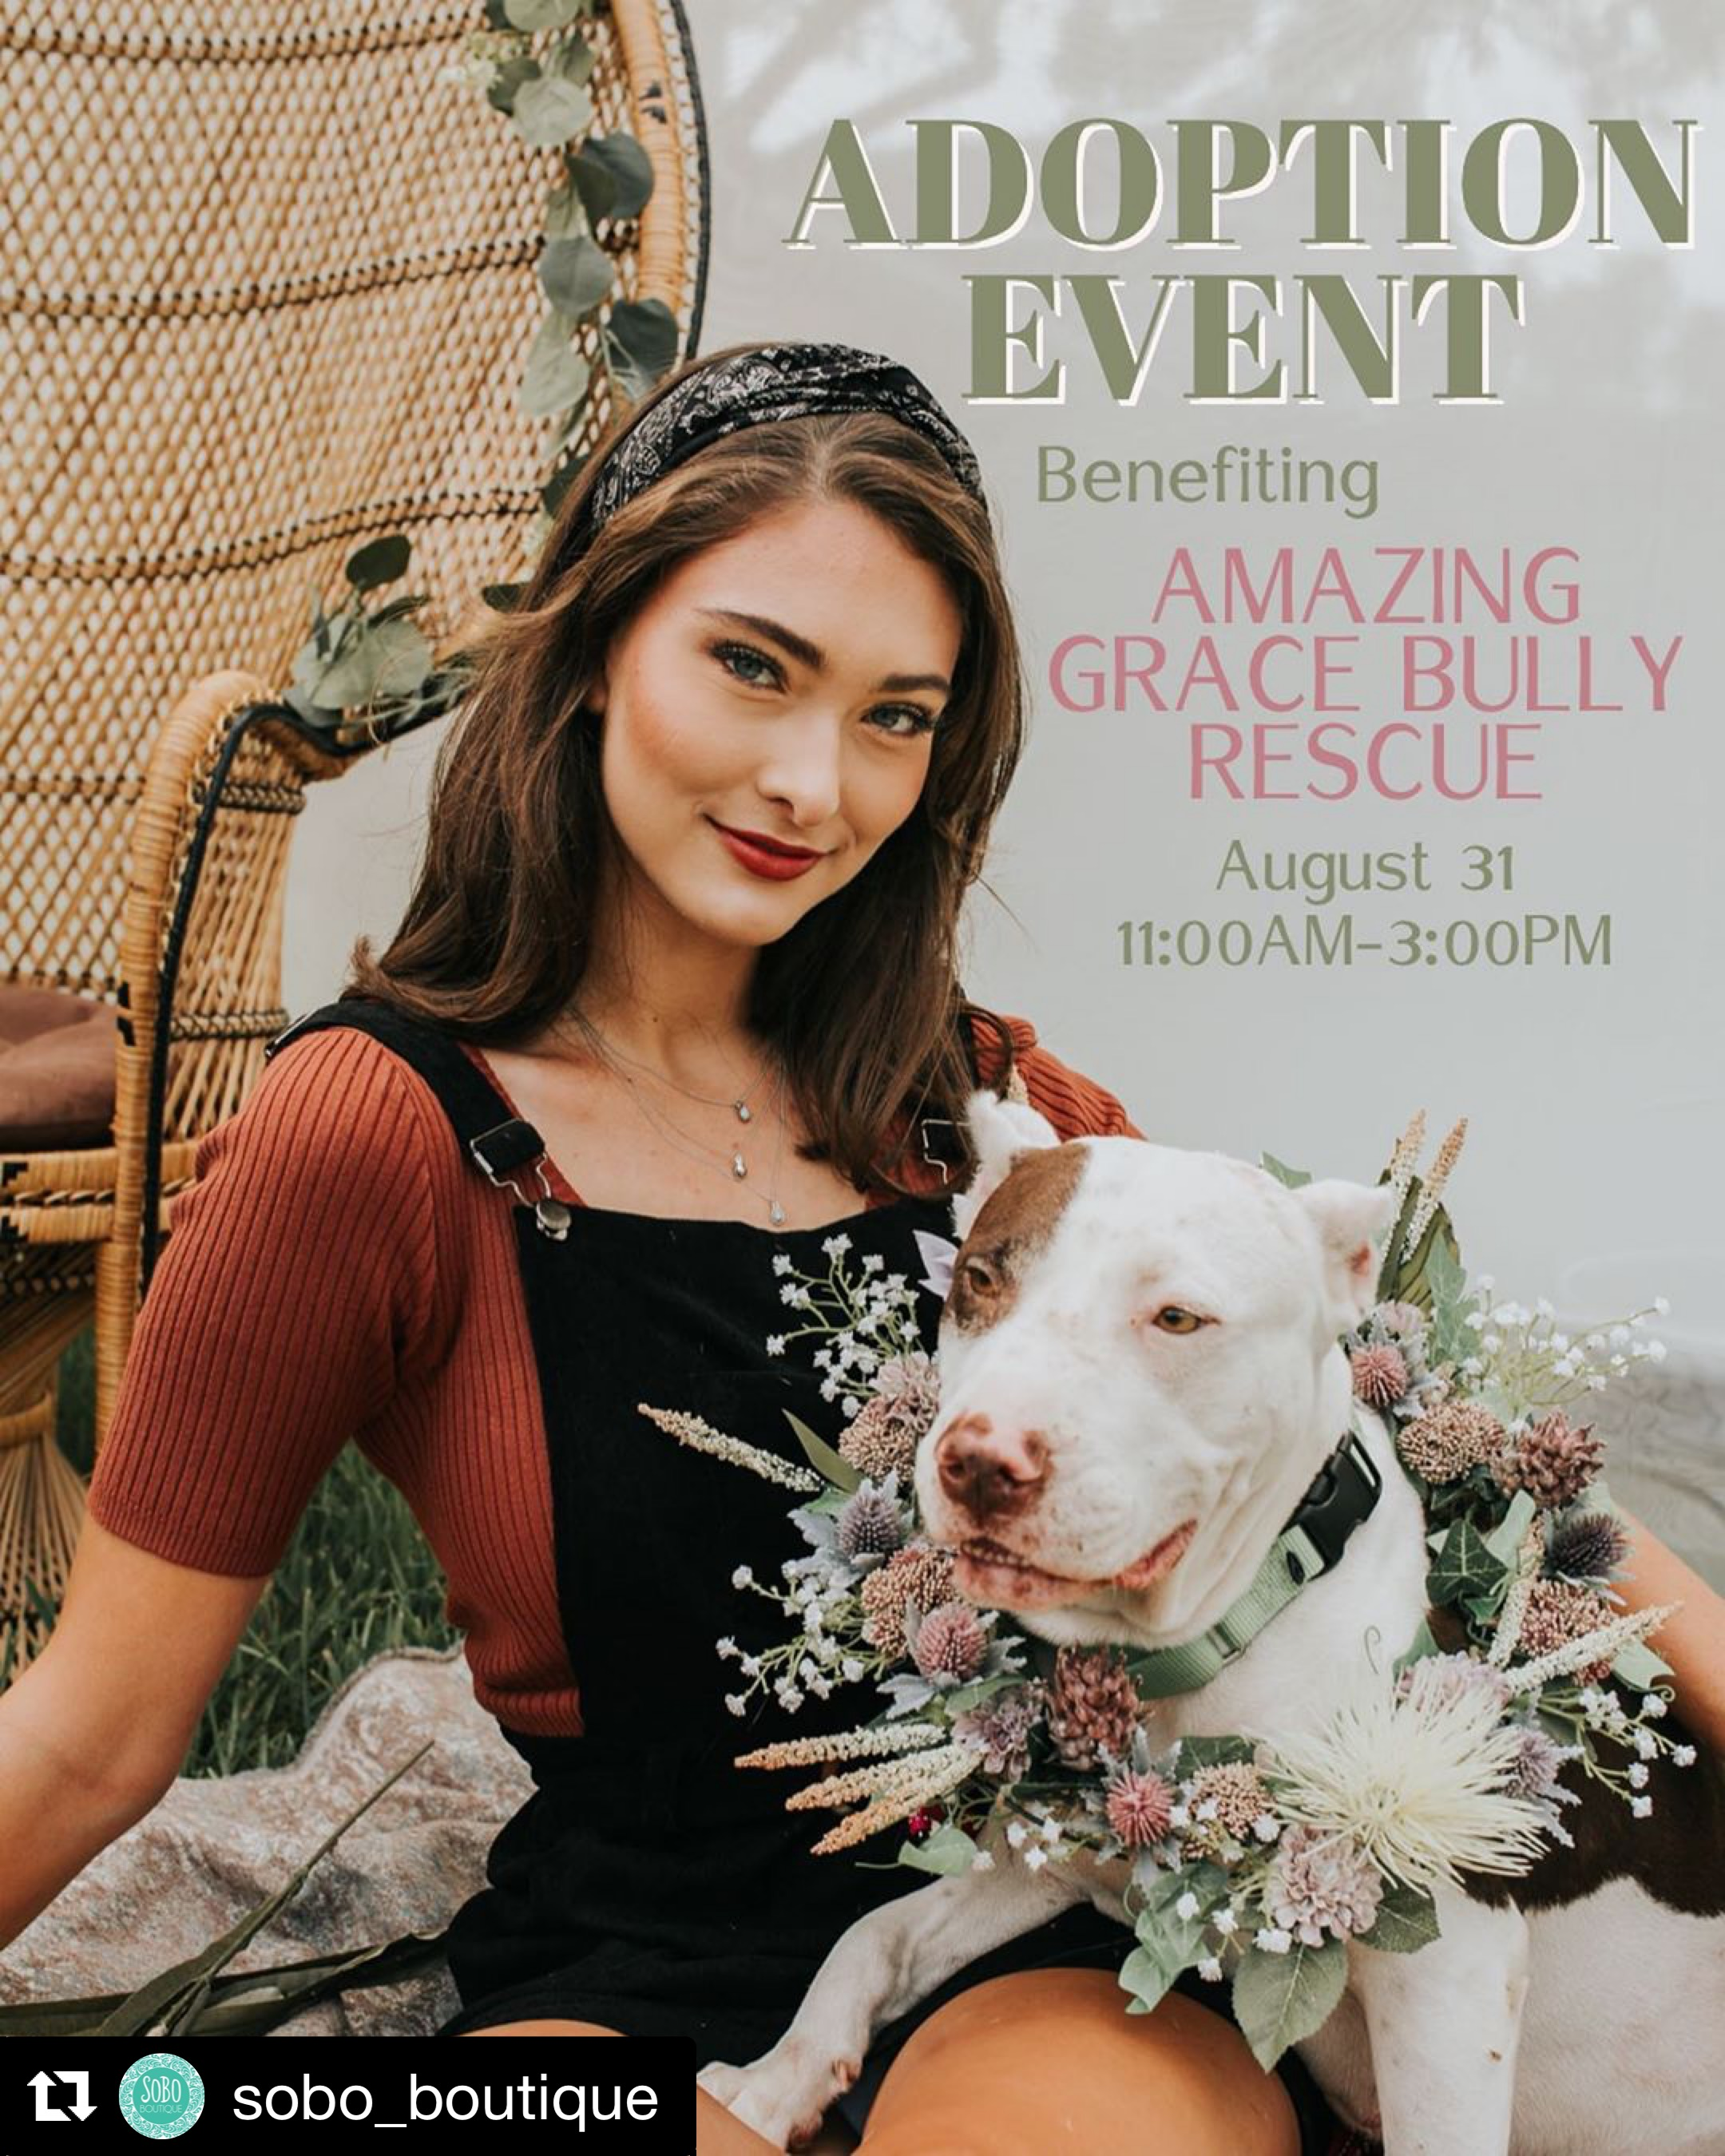 Sobo Boutique and Amazing Grace Bully Rescue